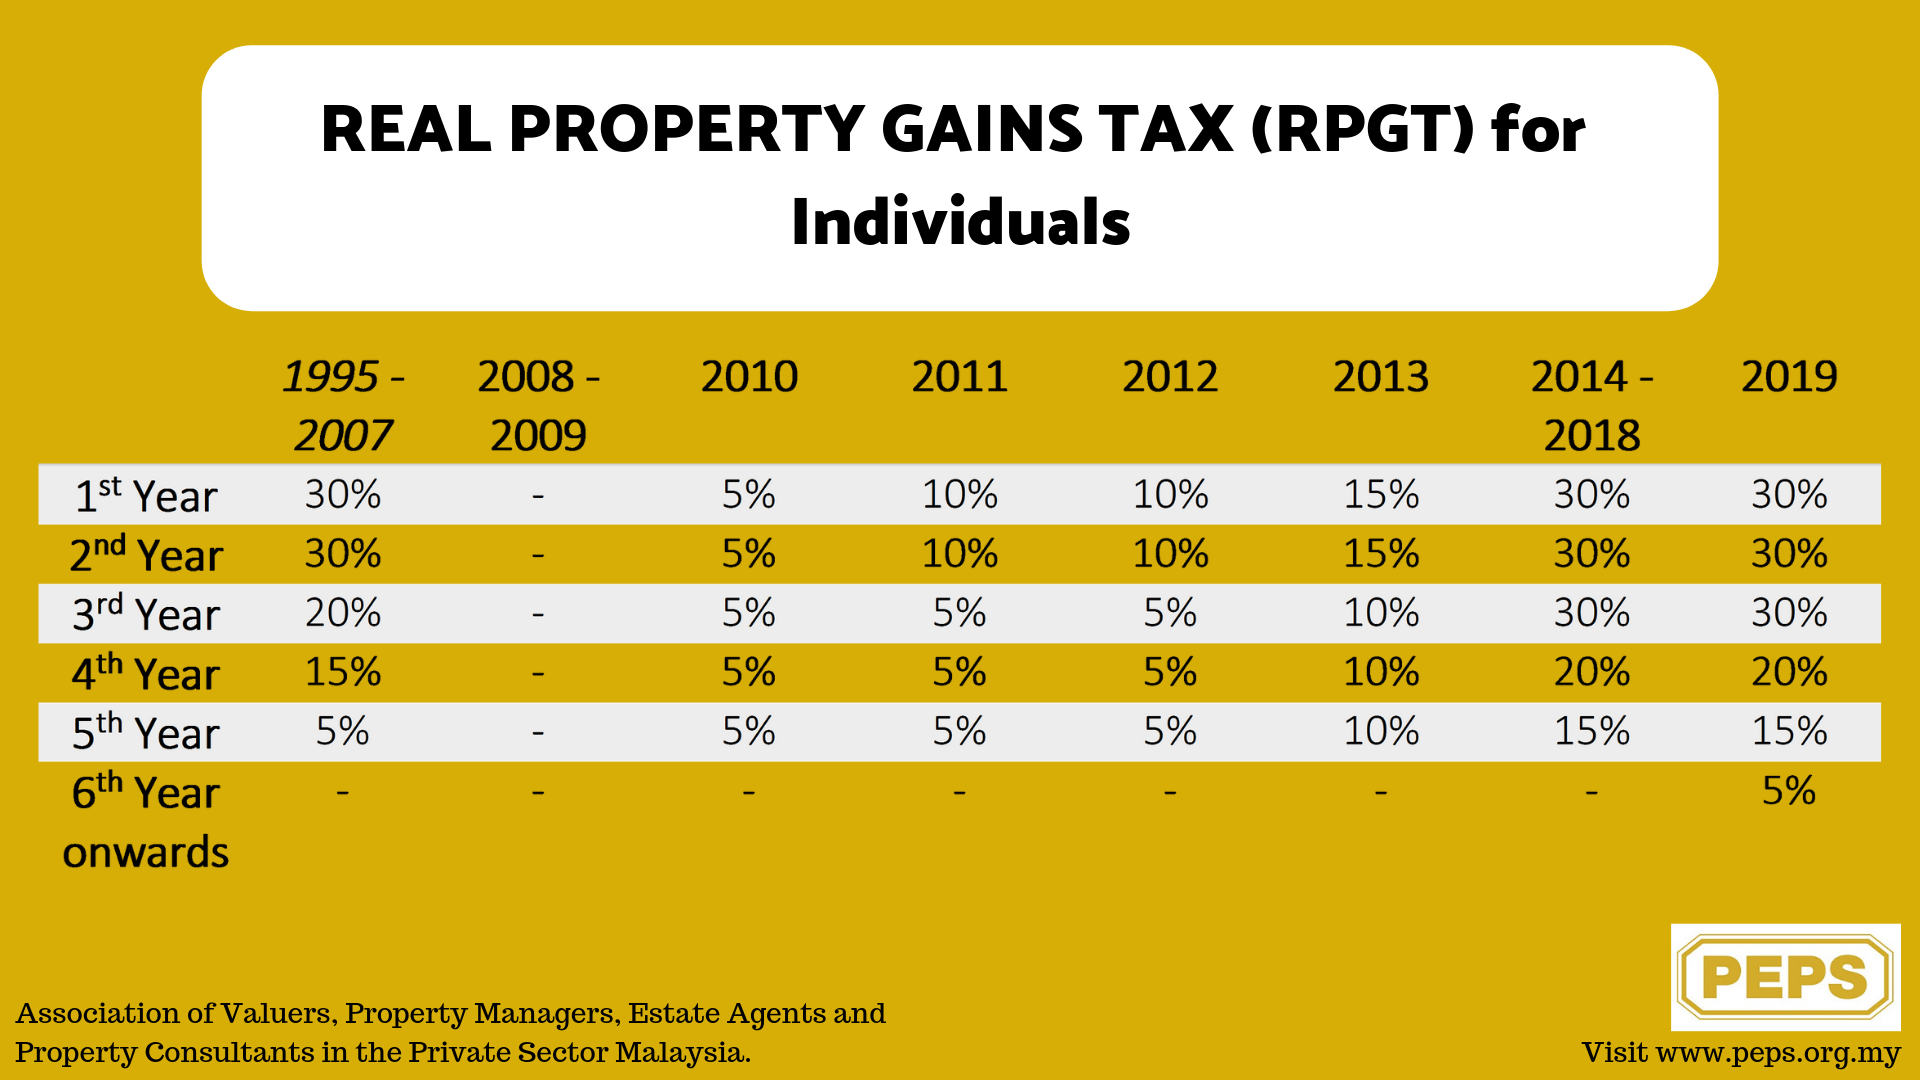 REAL PROPERTY GAINS TAX (RPGT) for Individuals